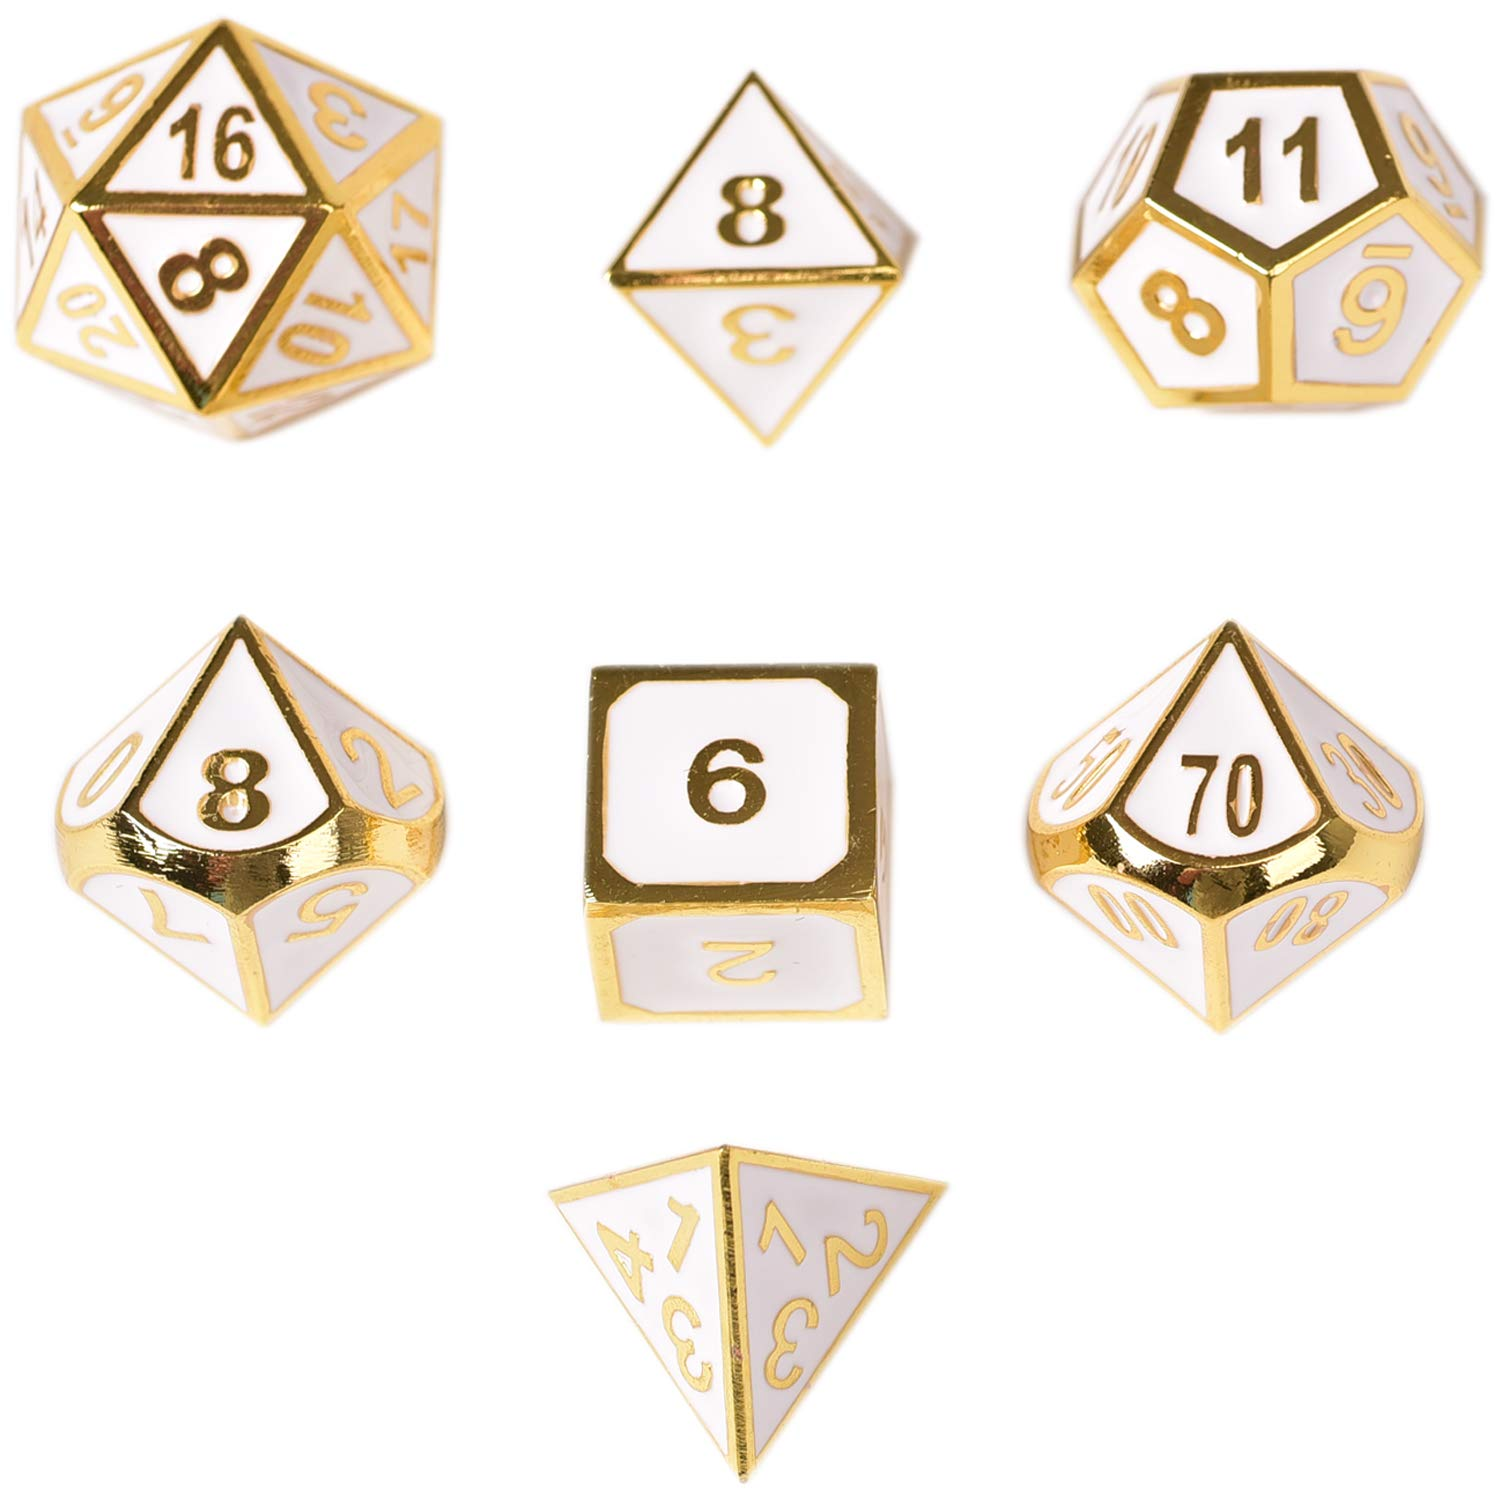 DND Dice Metal Polyhedral Dice 7pc Set Dungeons Dragons DND RPG MTG Table Games Math Teaching ( Gold White)